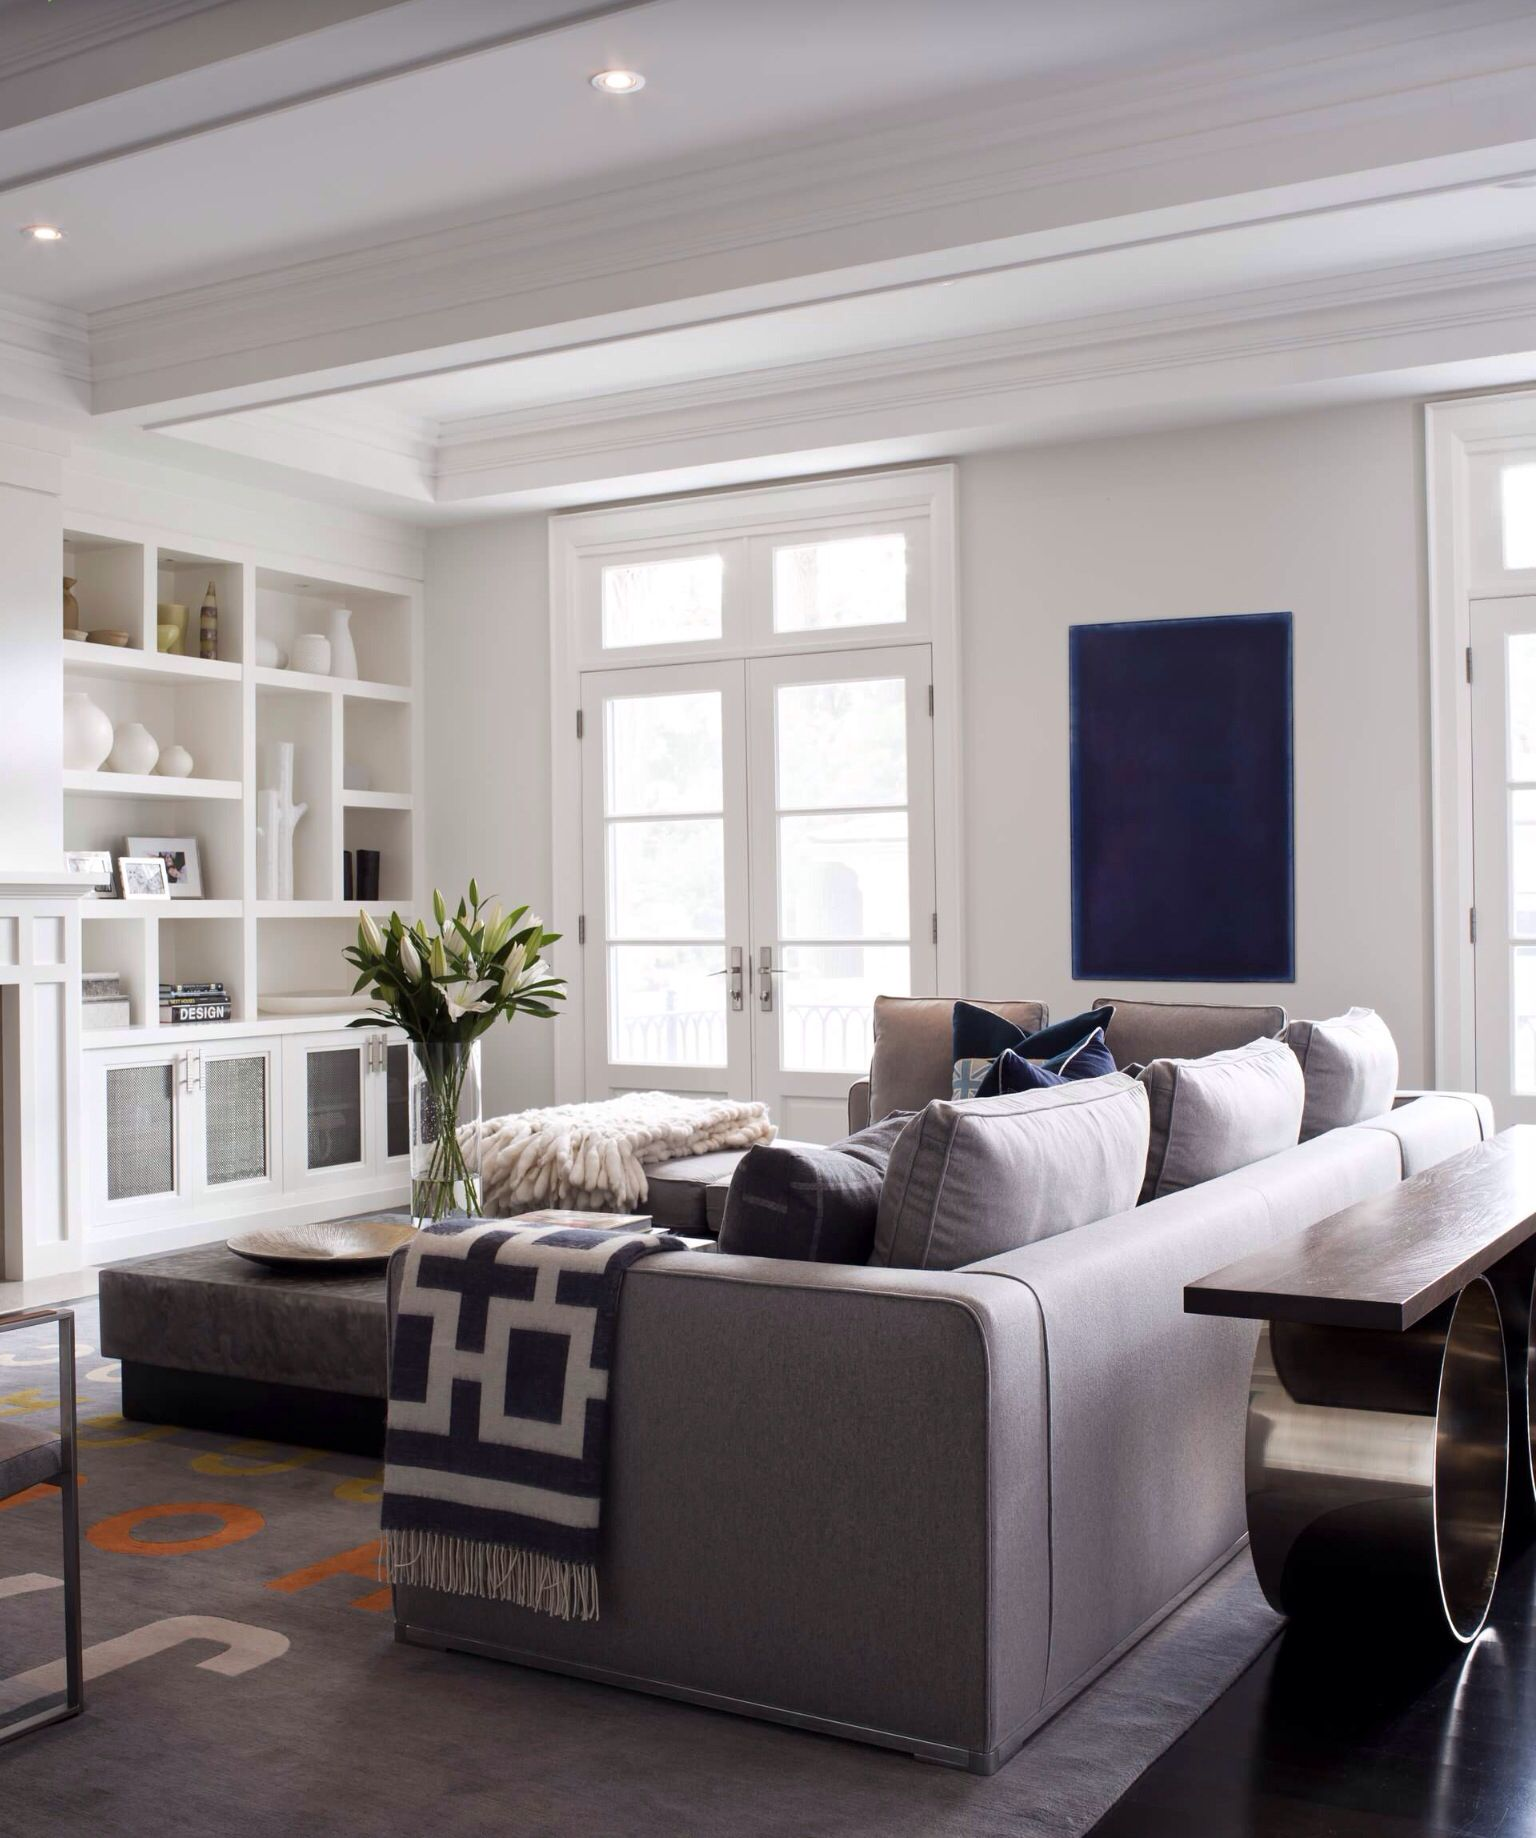 Wooden Wall Units For Living Room: Love The White Built-in Tv Wall Unit / Shelves .. Modern